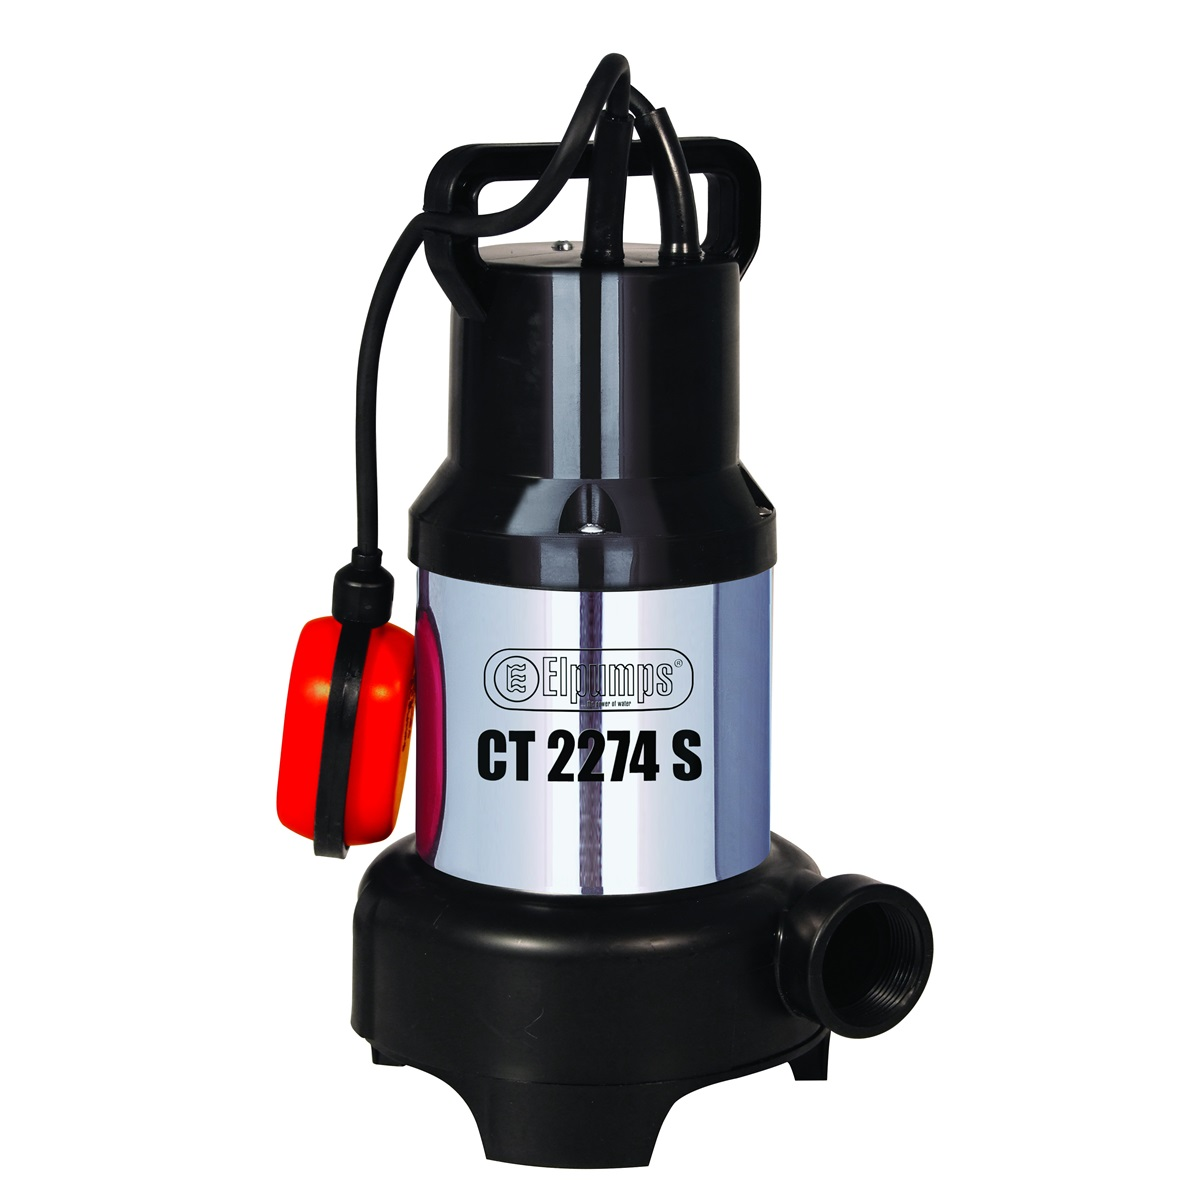 Elpumps CT 2274 S